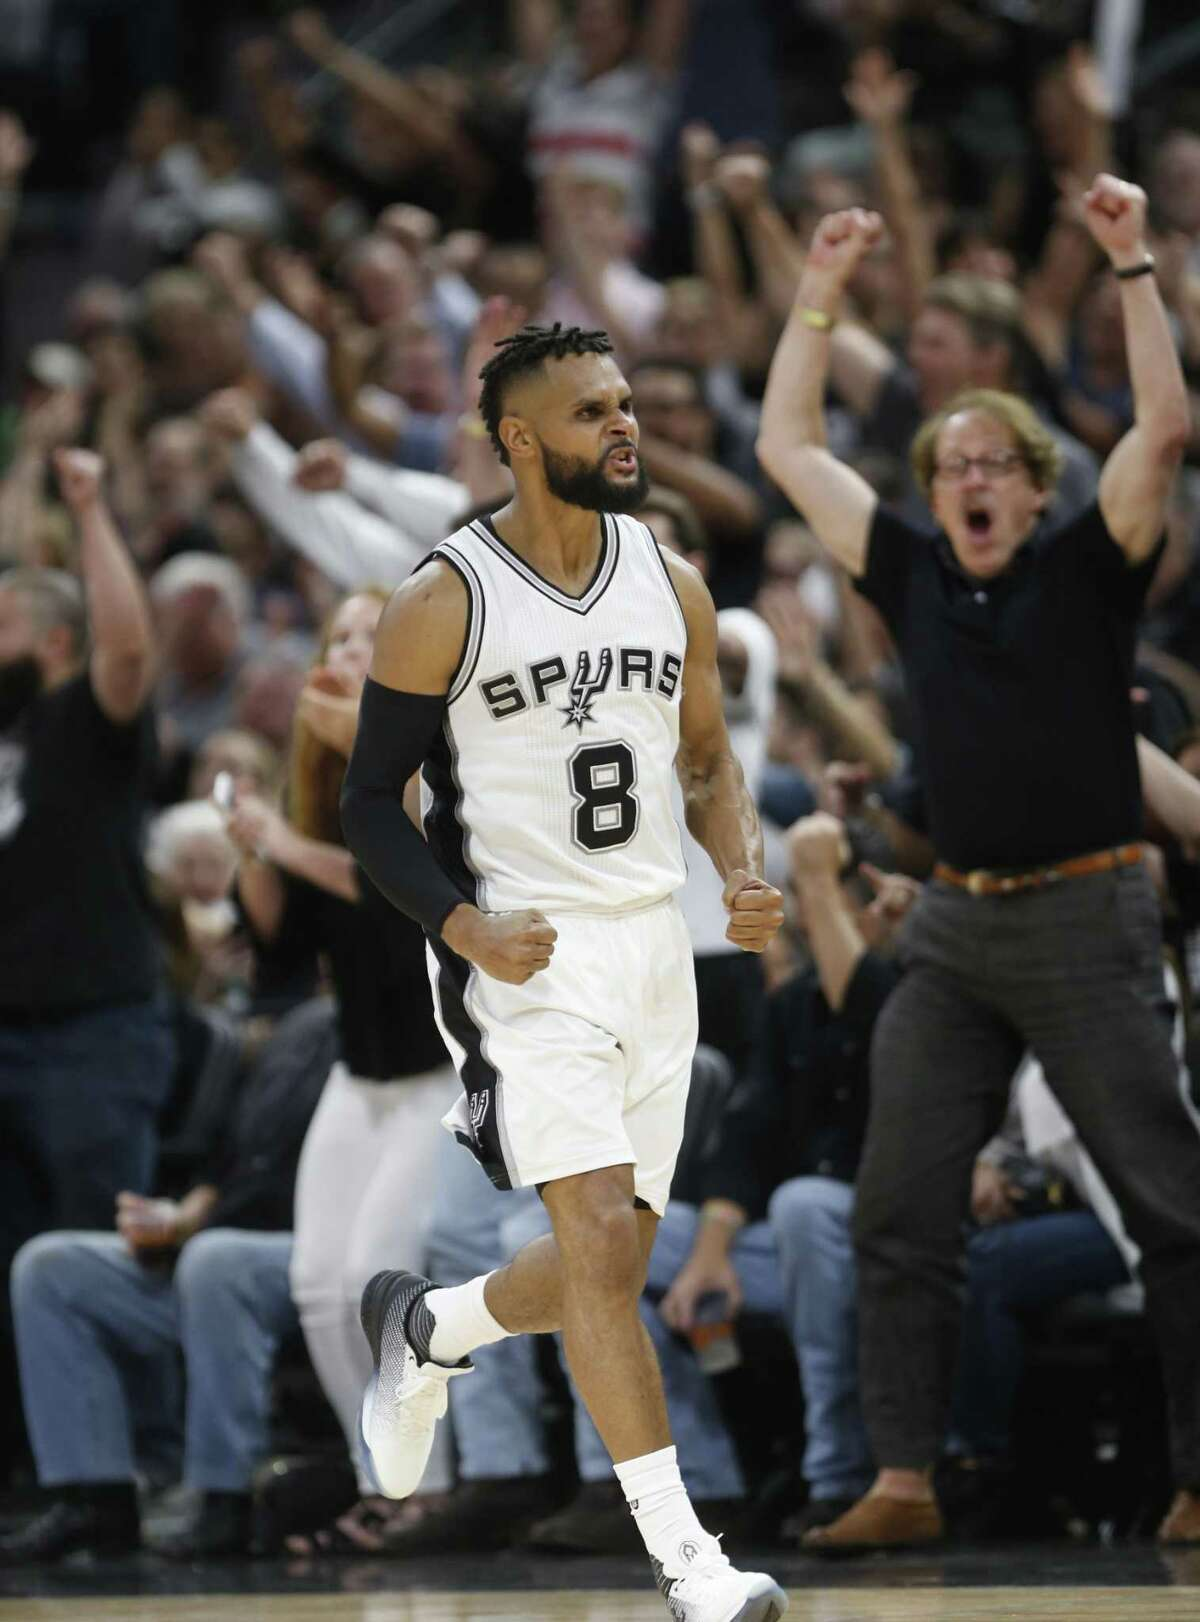 Patty Mills signed a four-year, almost $50 million deal to stay with the Spurs in 2017. The following are a few facts you may not know about him.